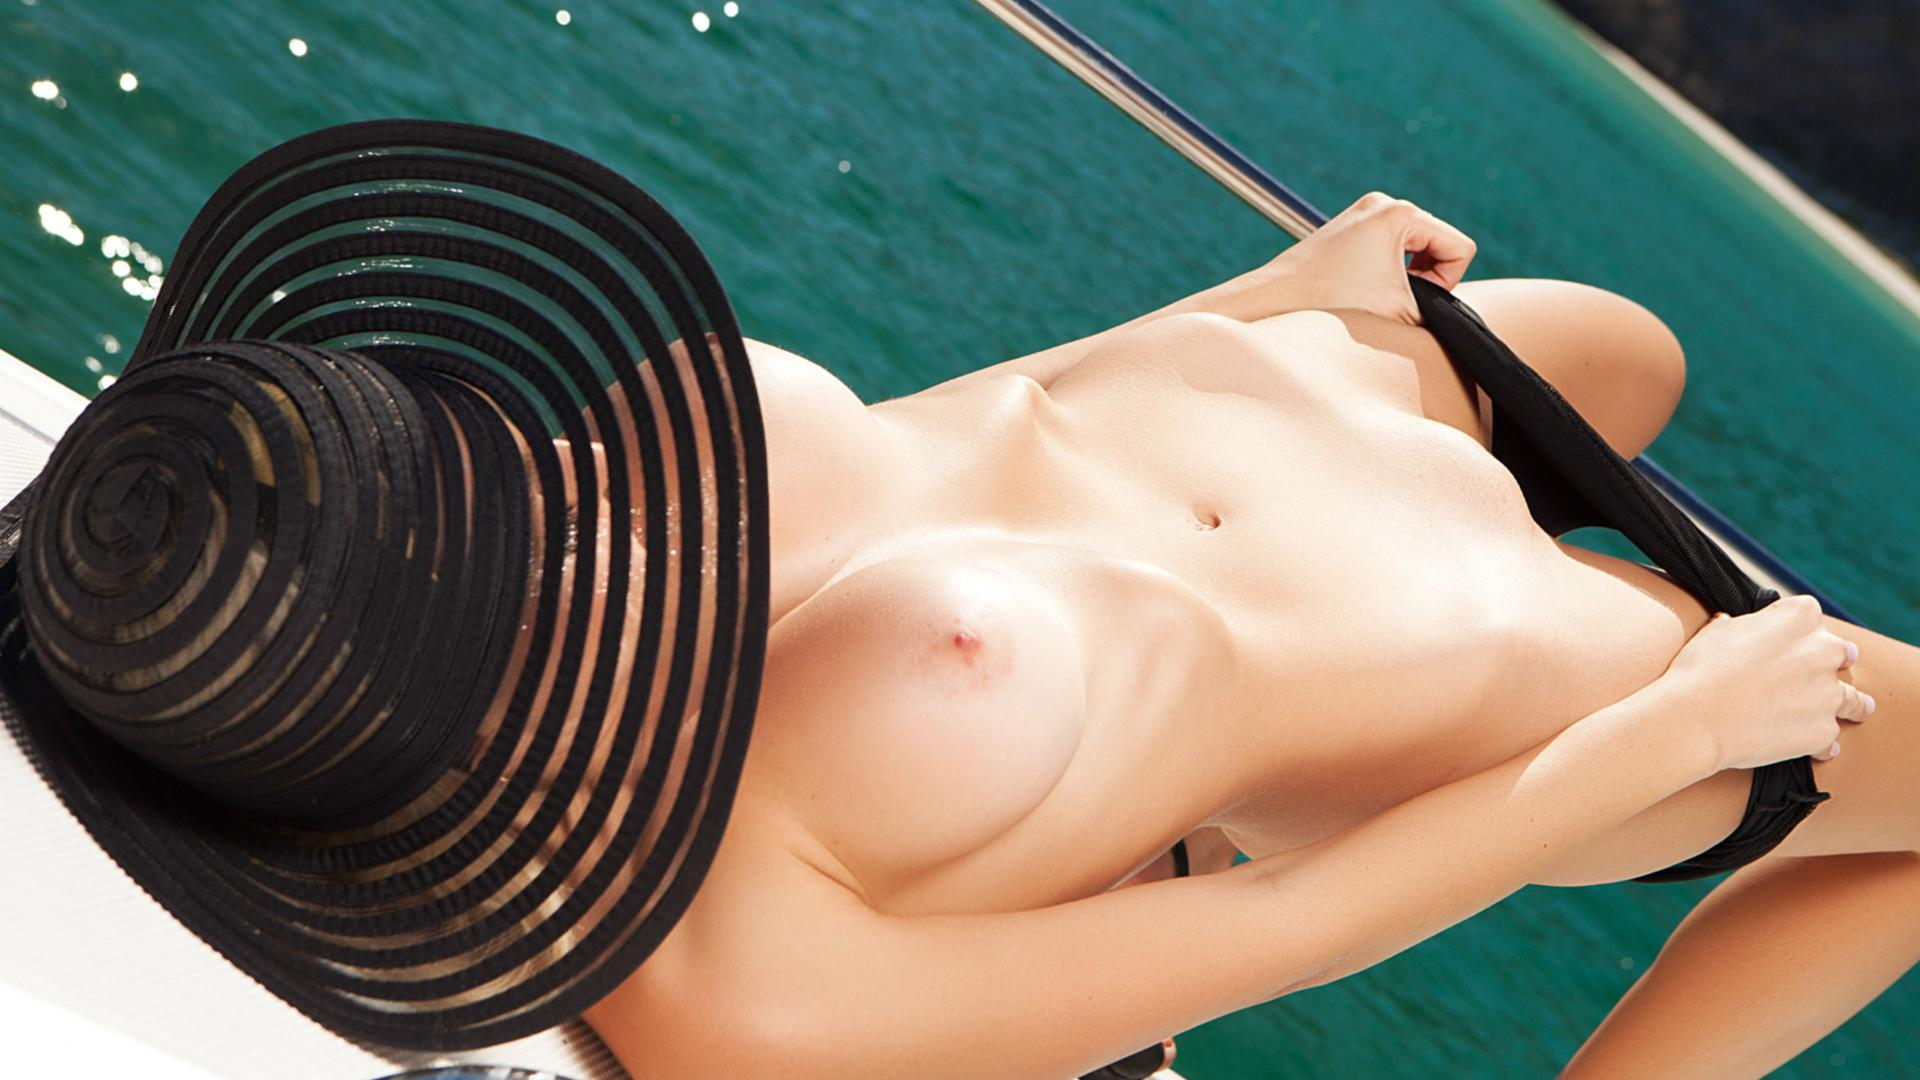 ... model, yacht, naked, big tits, pink nipples, shaved pussy - ID: 159026